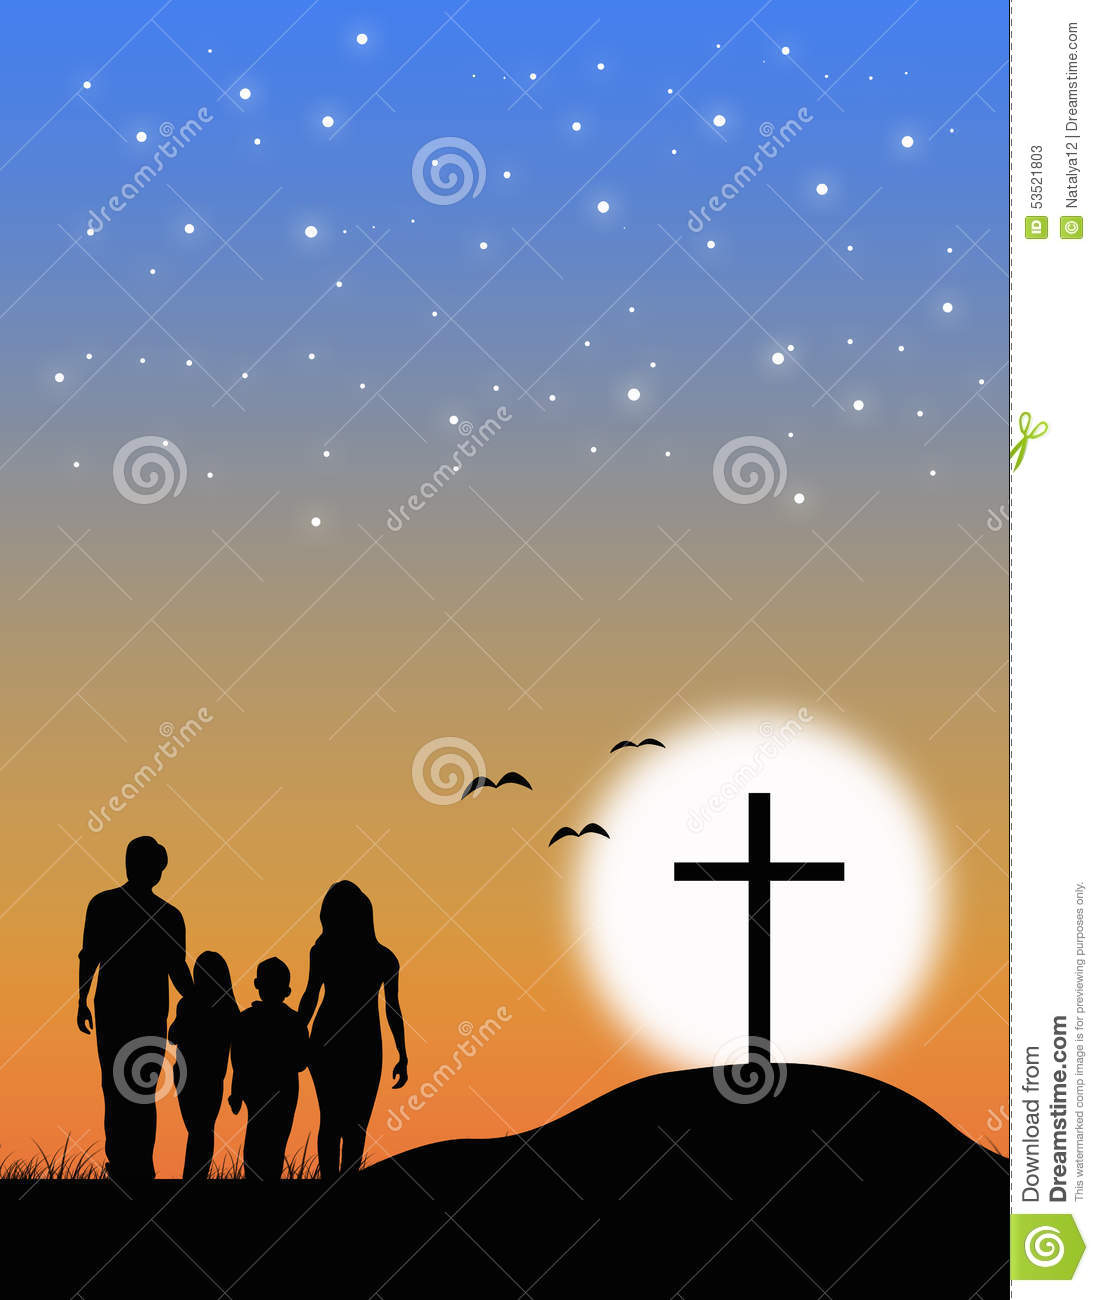 Christian Family At The Cross Stock Illustration - Image: 53521803